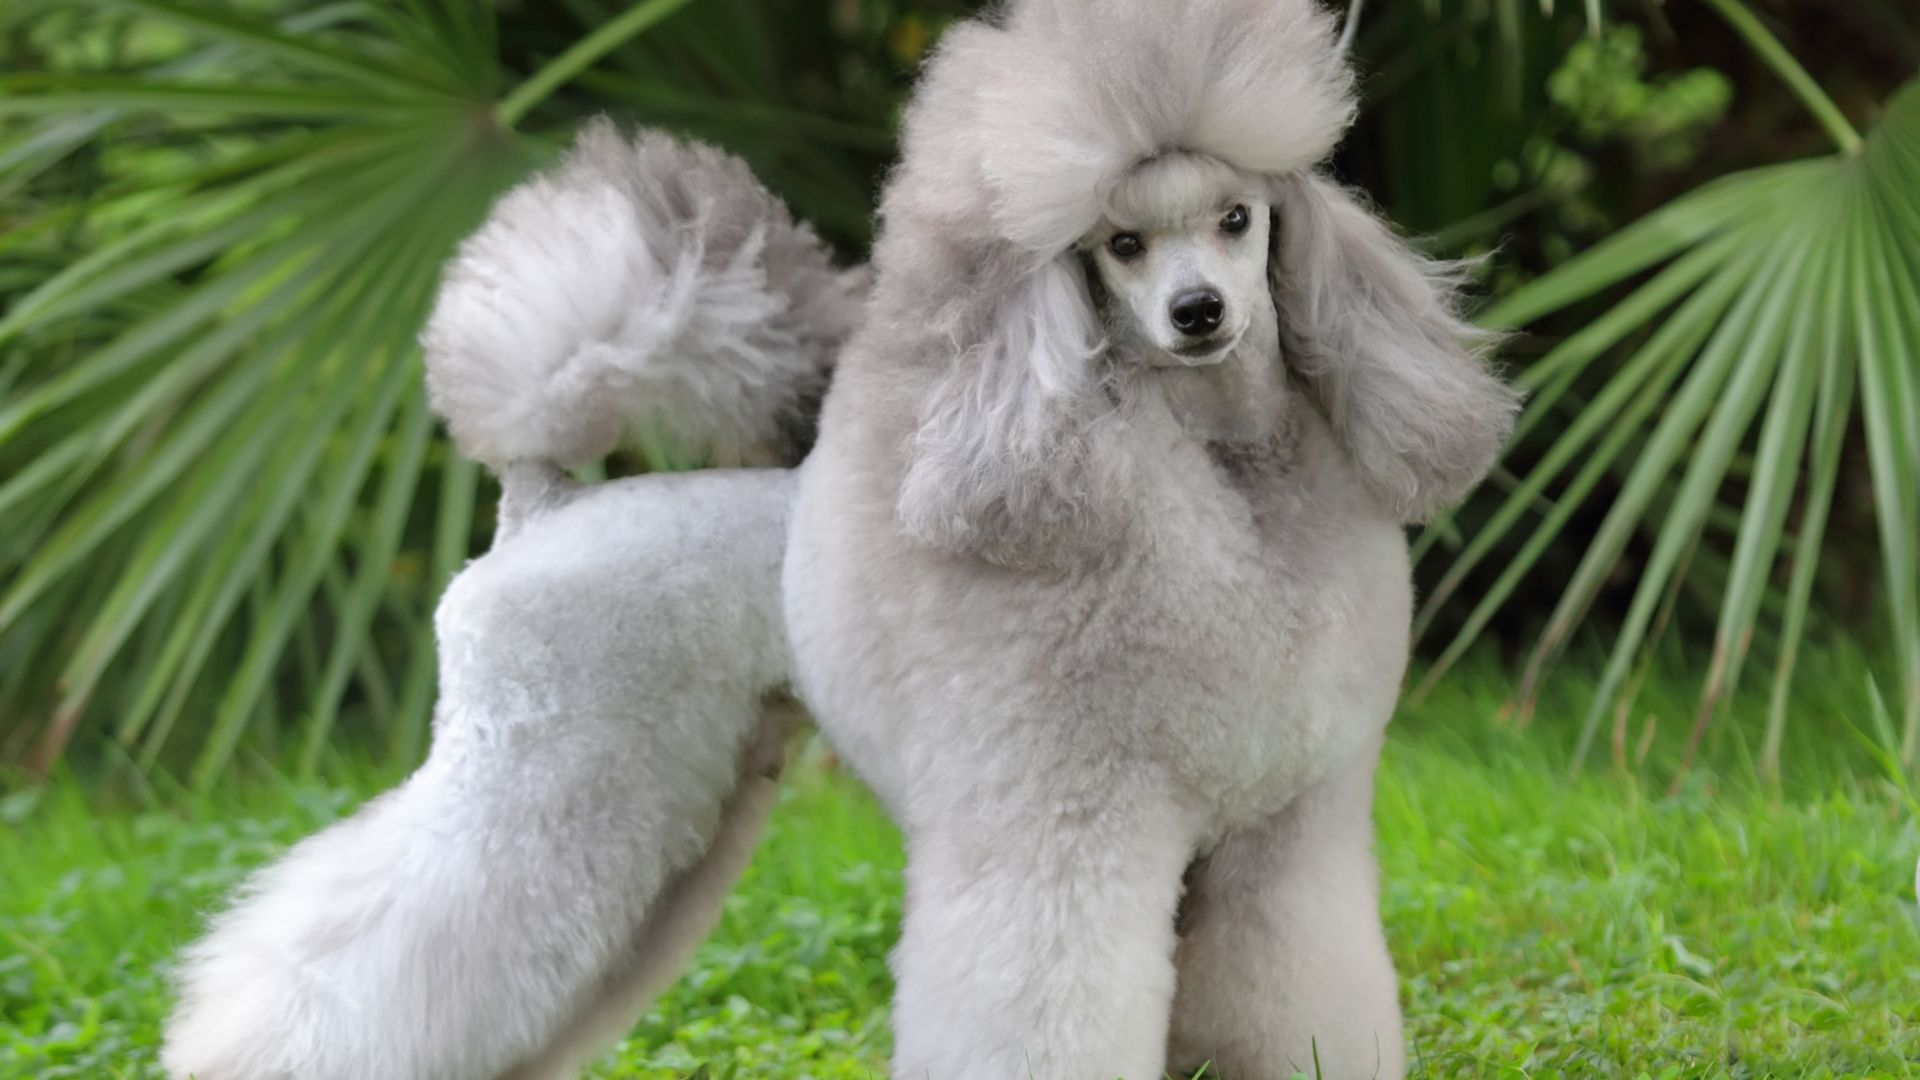 Poodle, grey, grass, cute animals (horizontal)